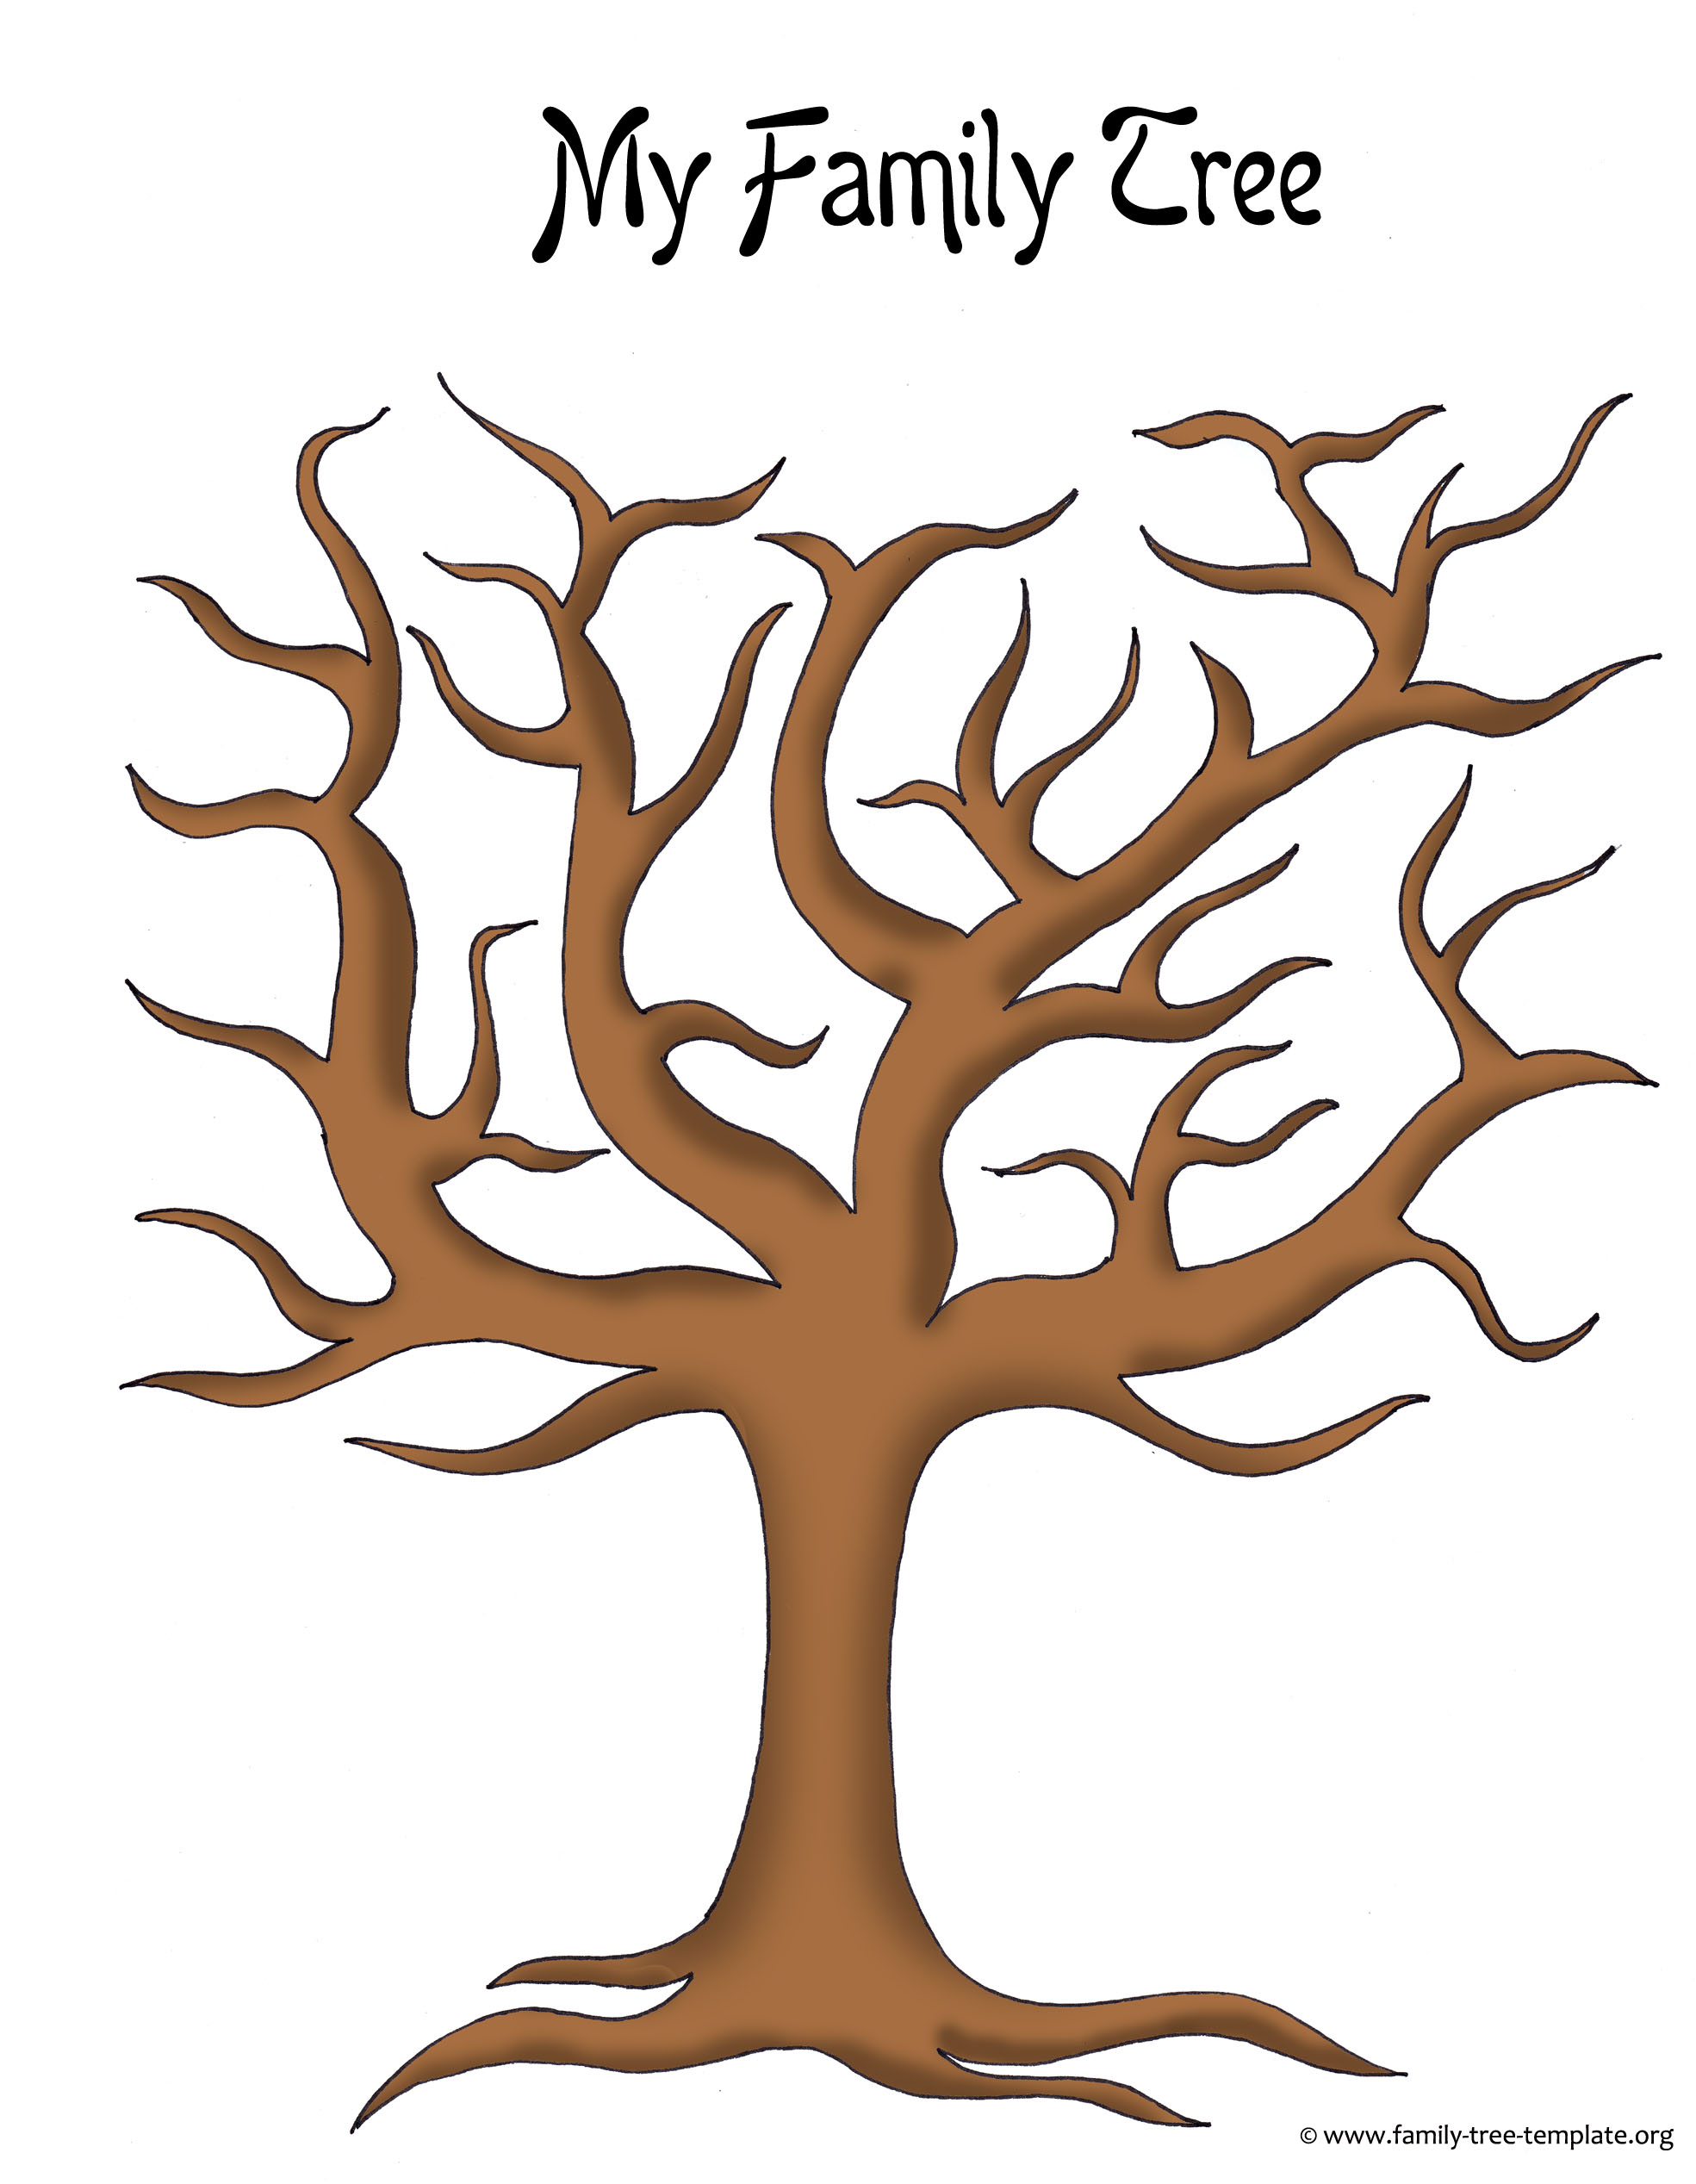 Make A Family Tree Easily With These Free Ancestry Charts - Free Printable Tree Template